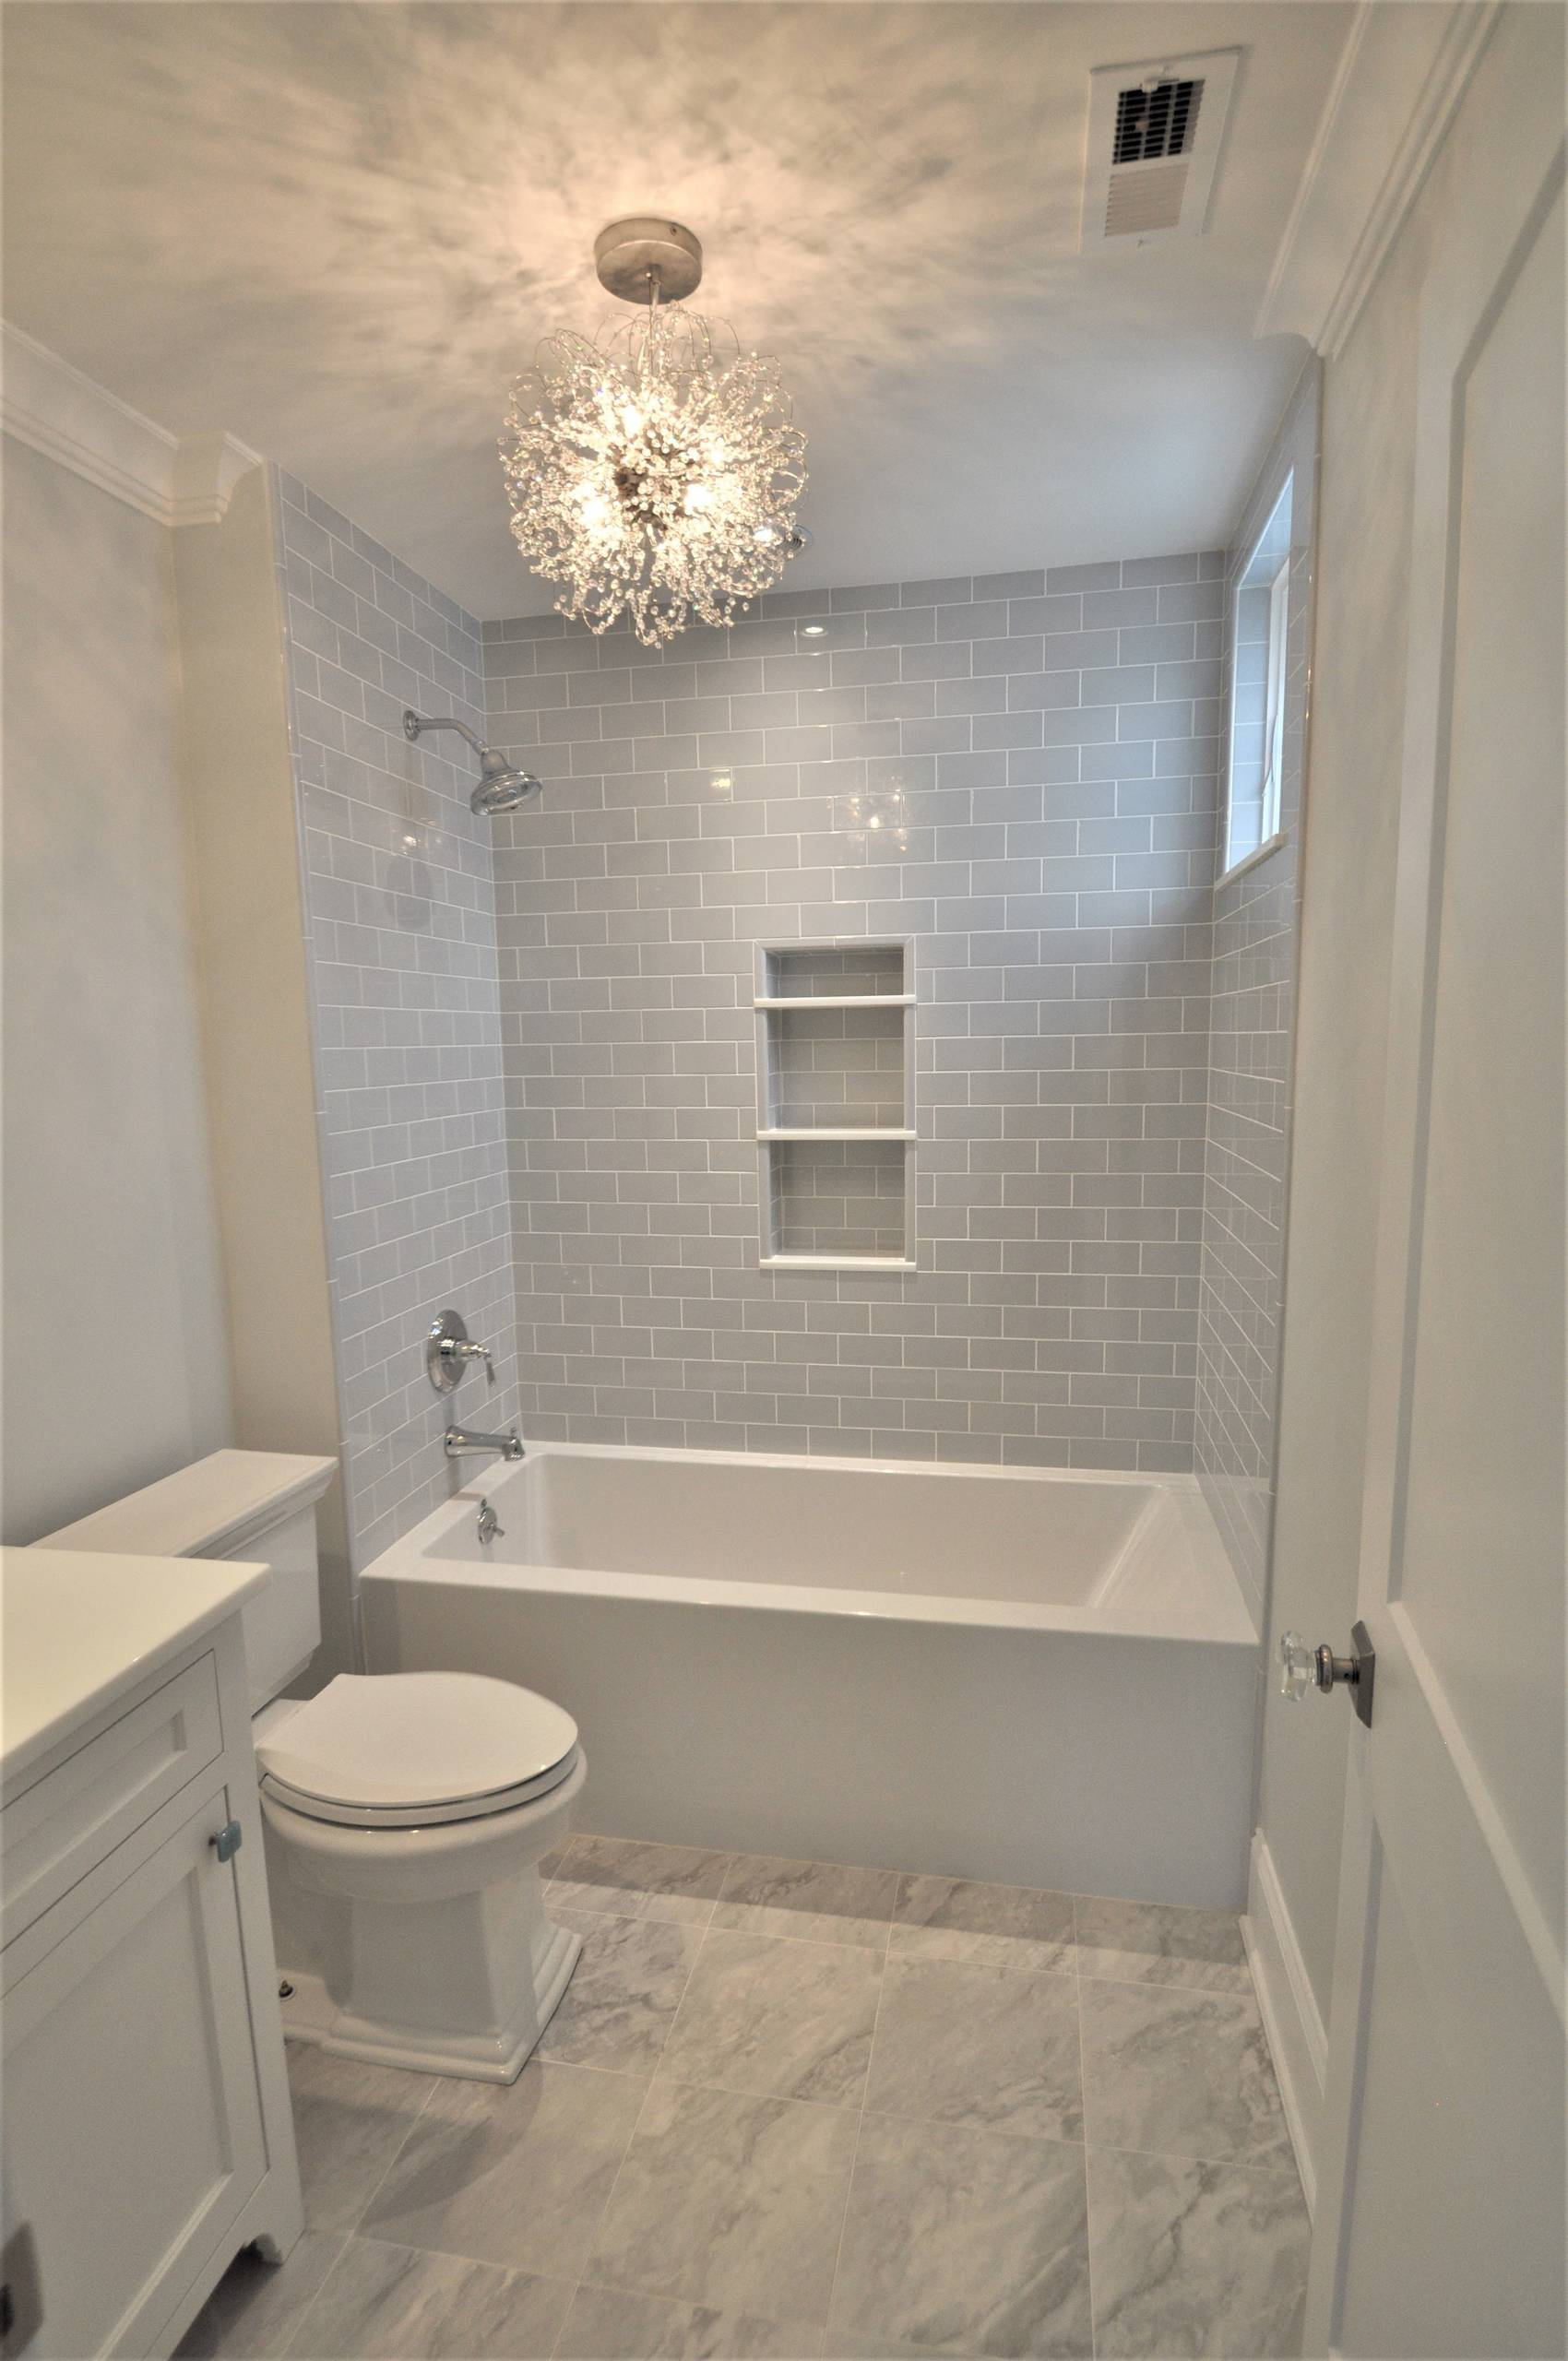 12 Beautiful Small Bathroom Pictures & Ideas - January, 12  Houzz